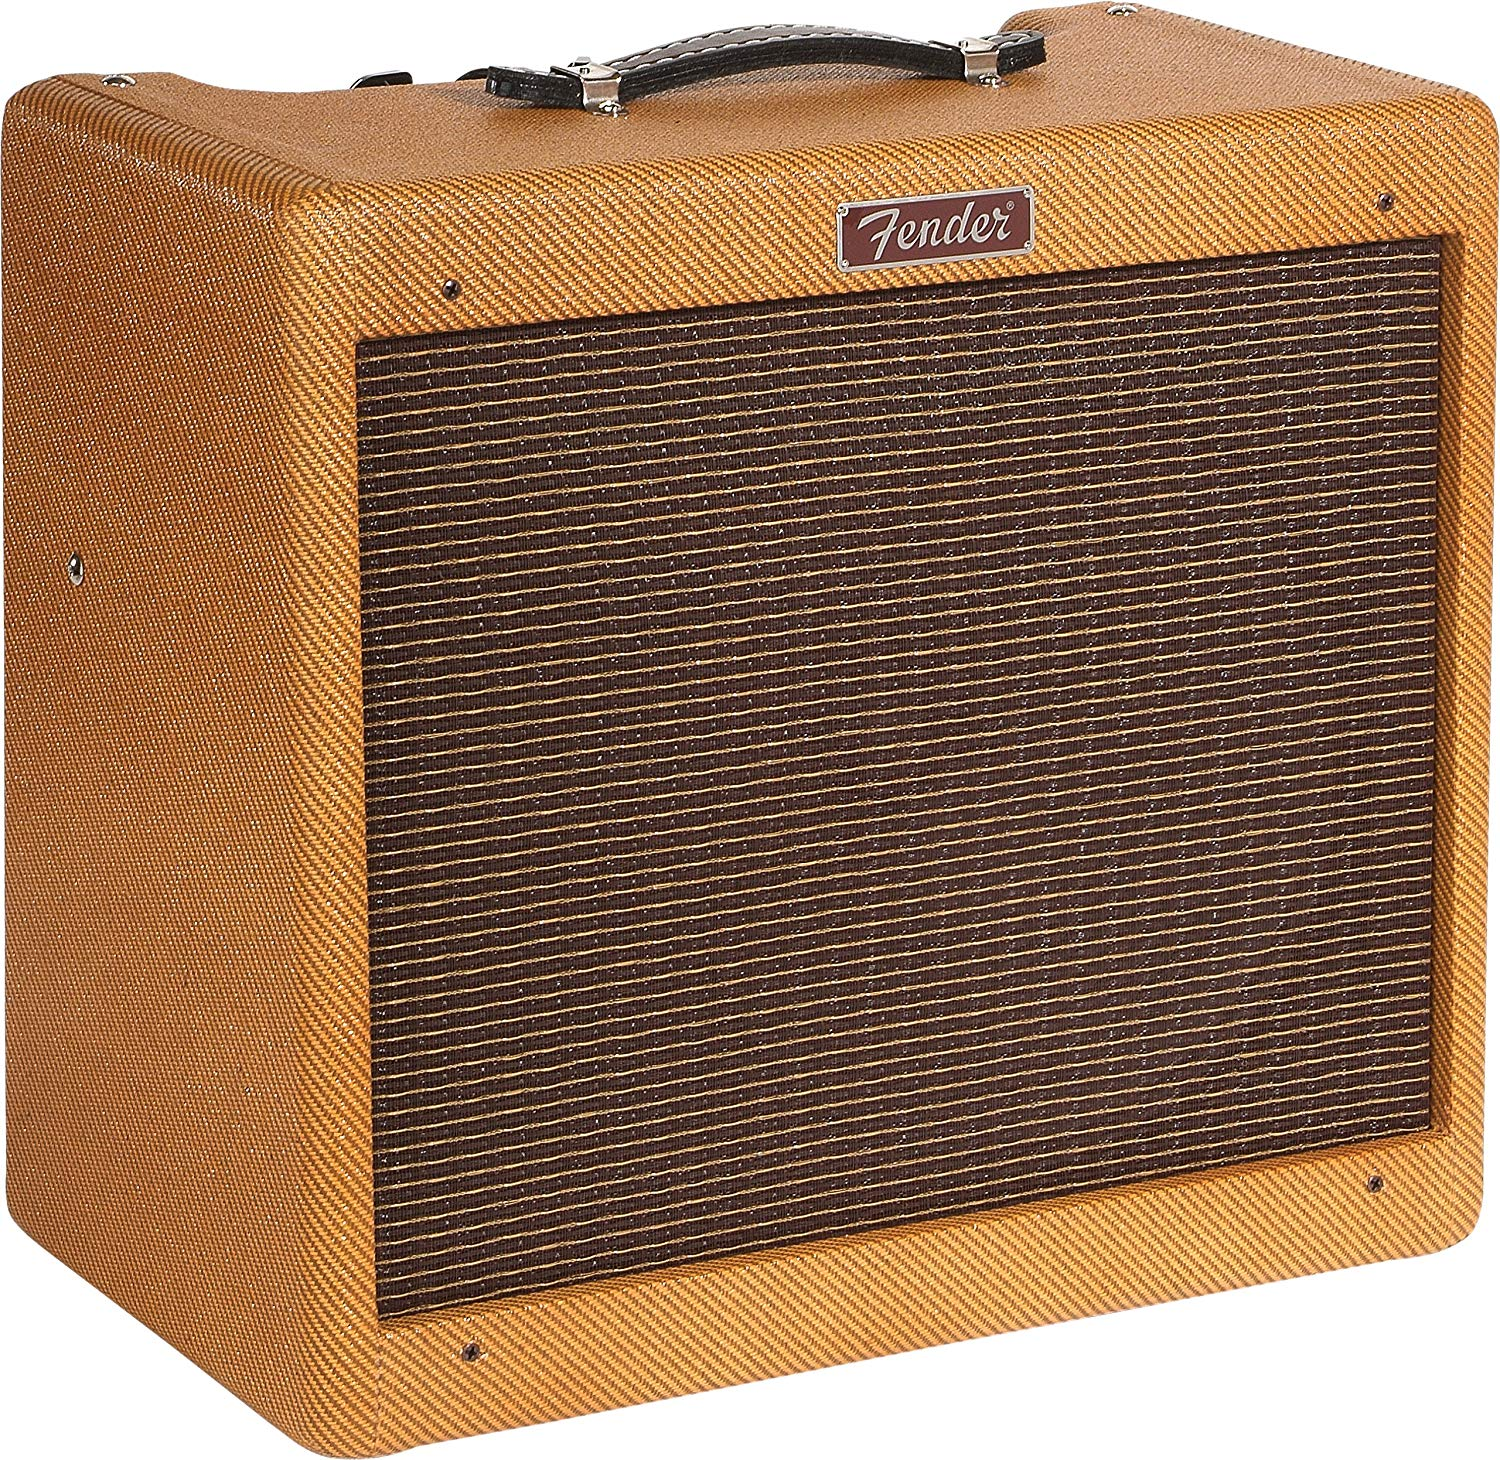 Angled View of the Fender Hot Rod LTD Tube Amplifier